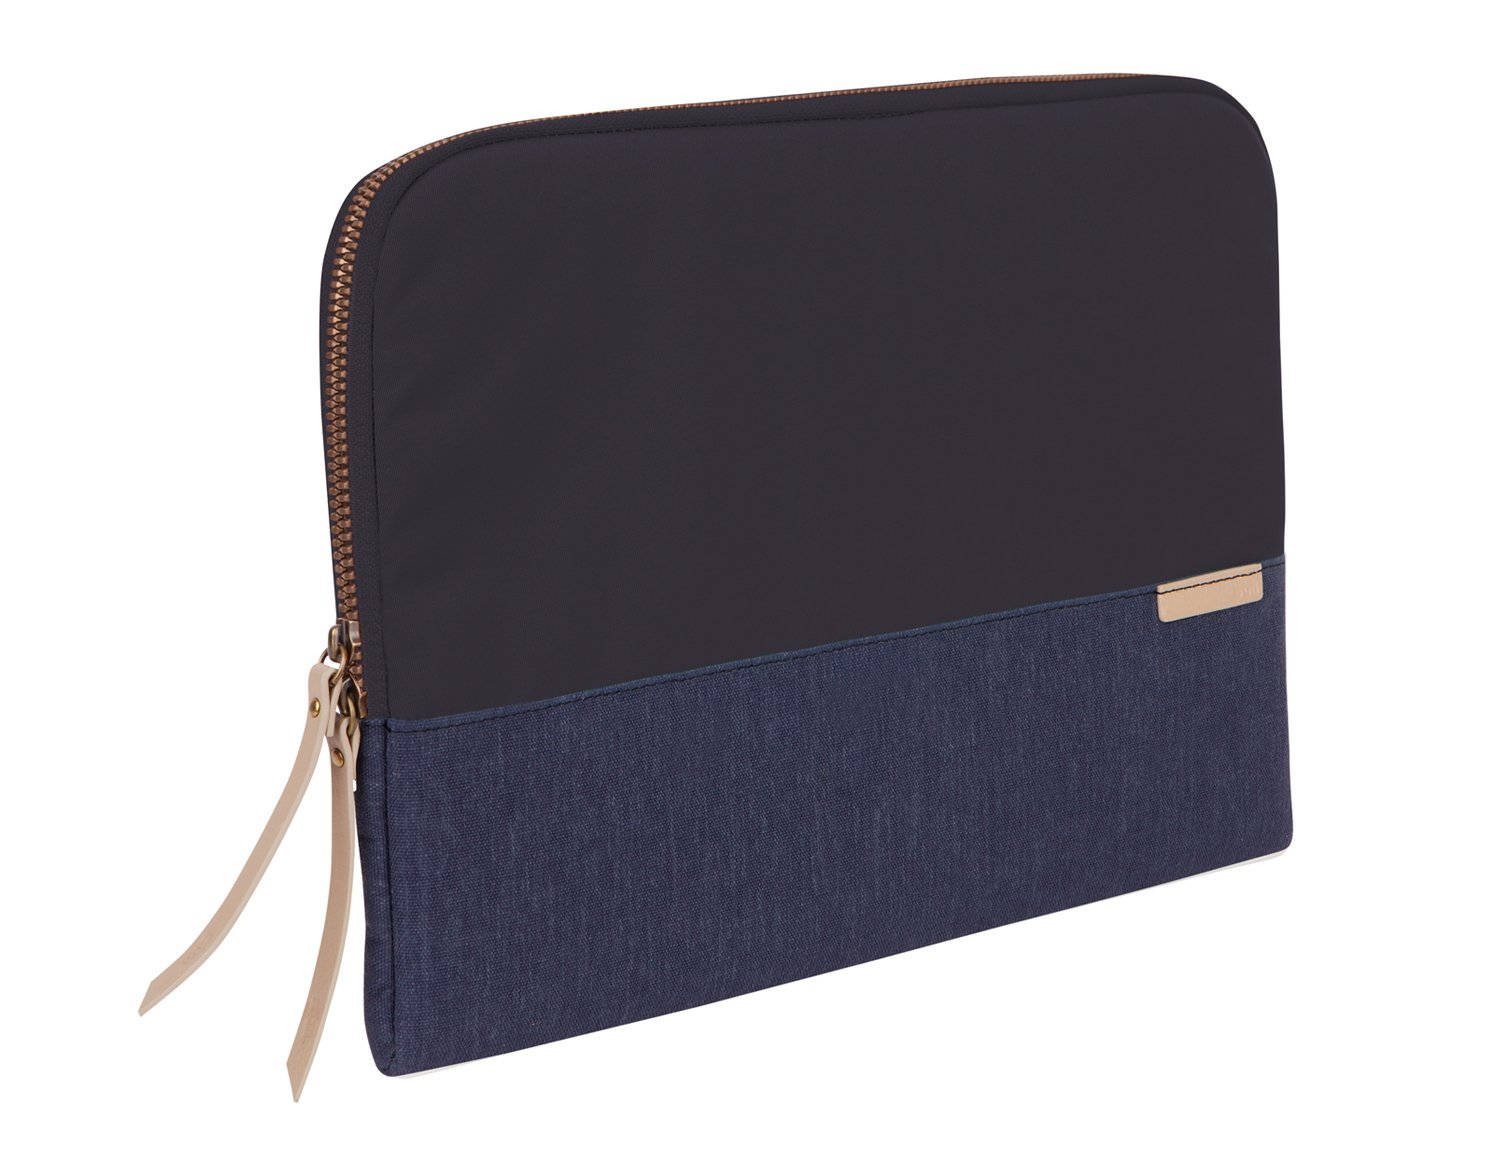 STM 931-105Z-44 Blue Polyester Women Clutch bag